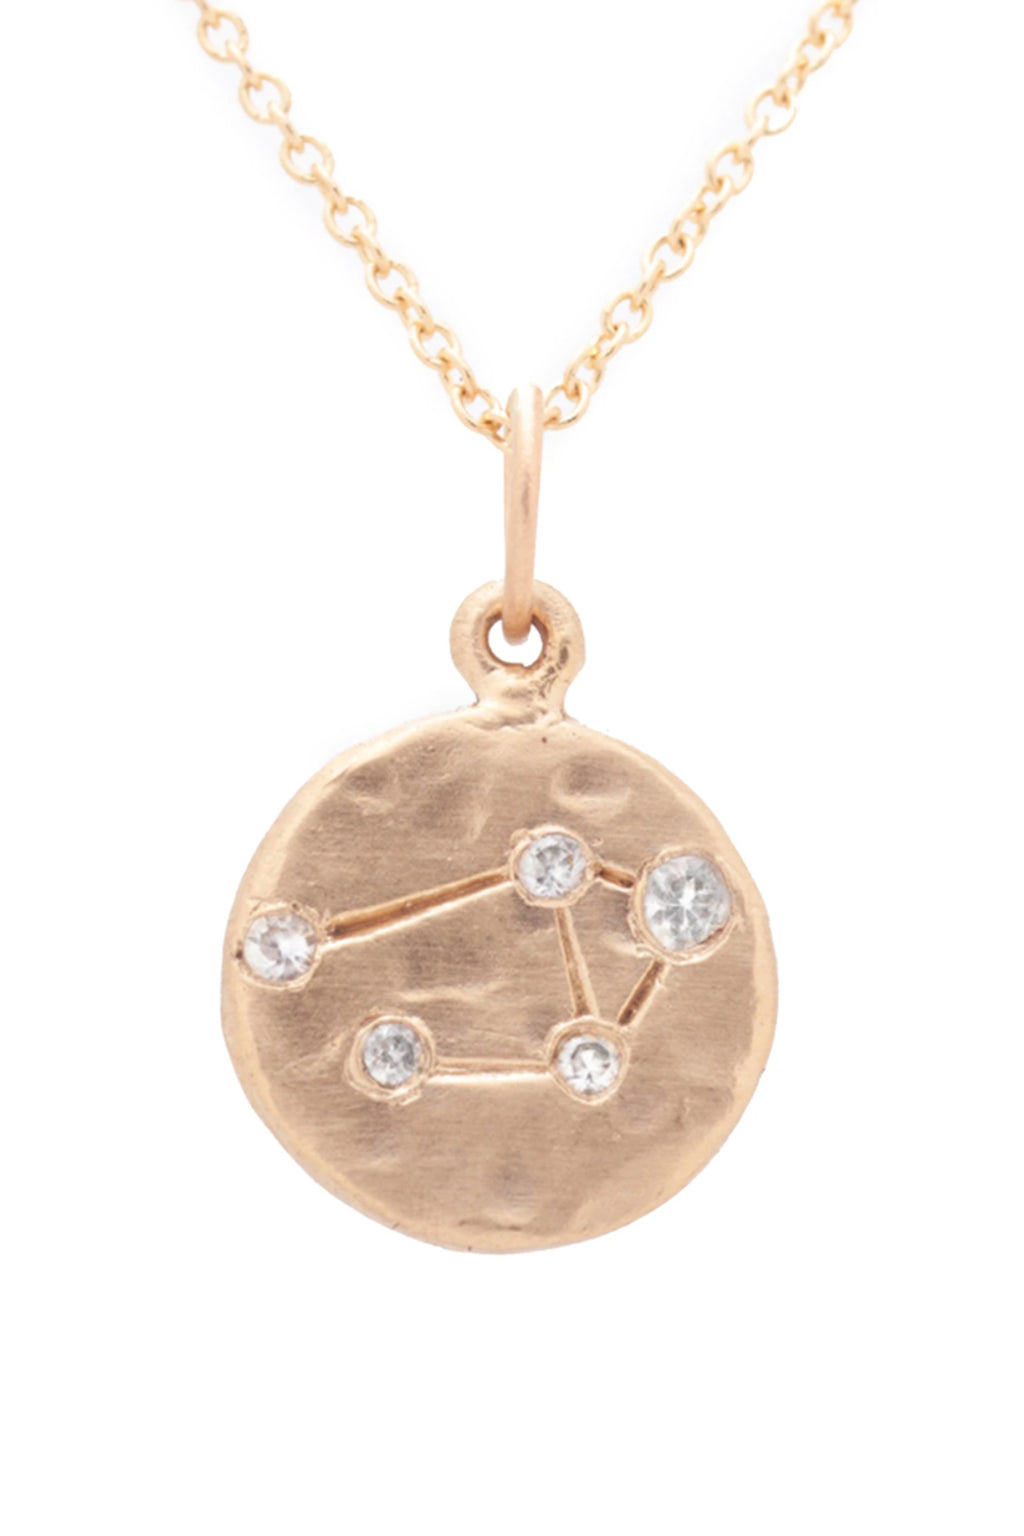 Valley Rose Libra Constellation Necklace in White Sapphire